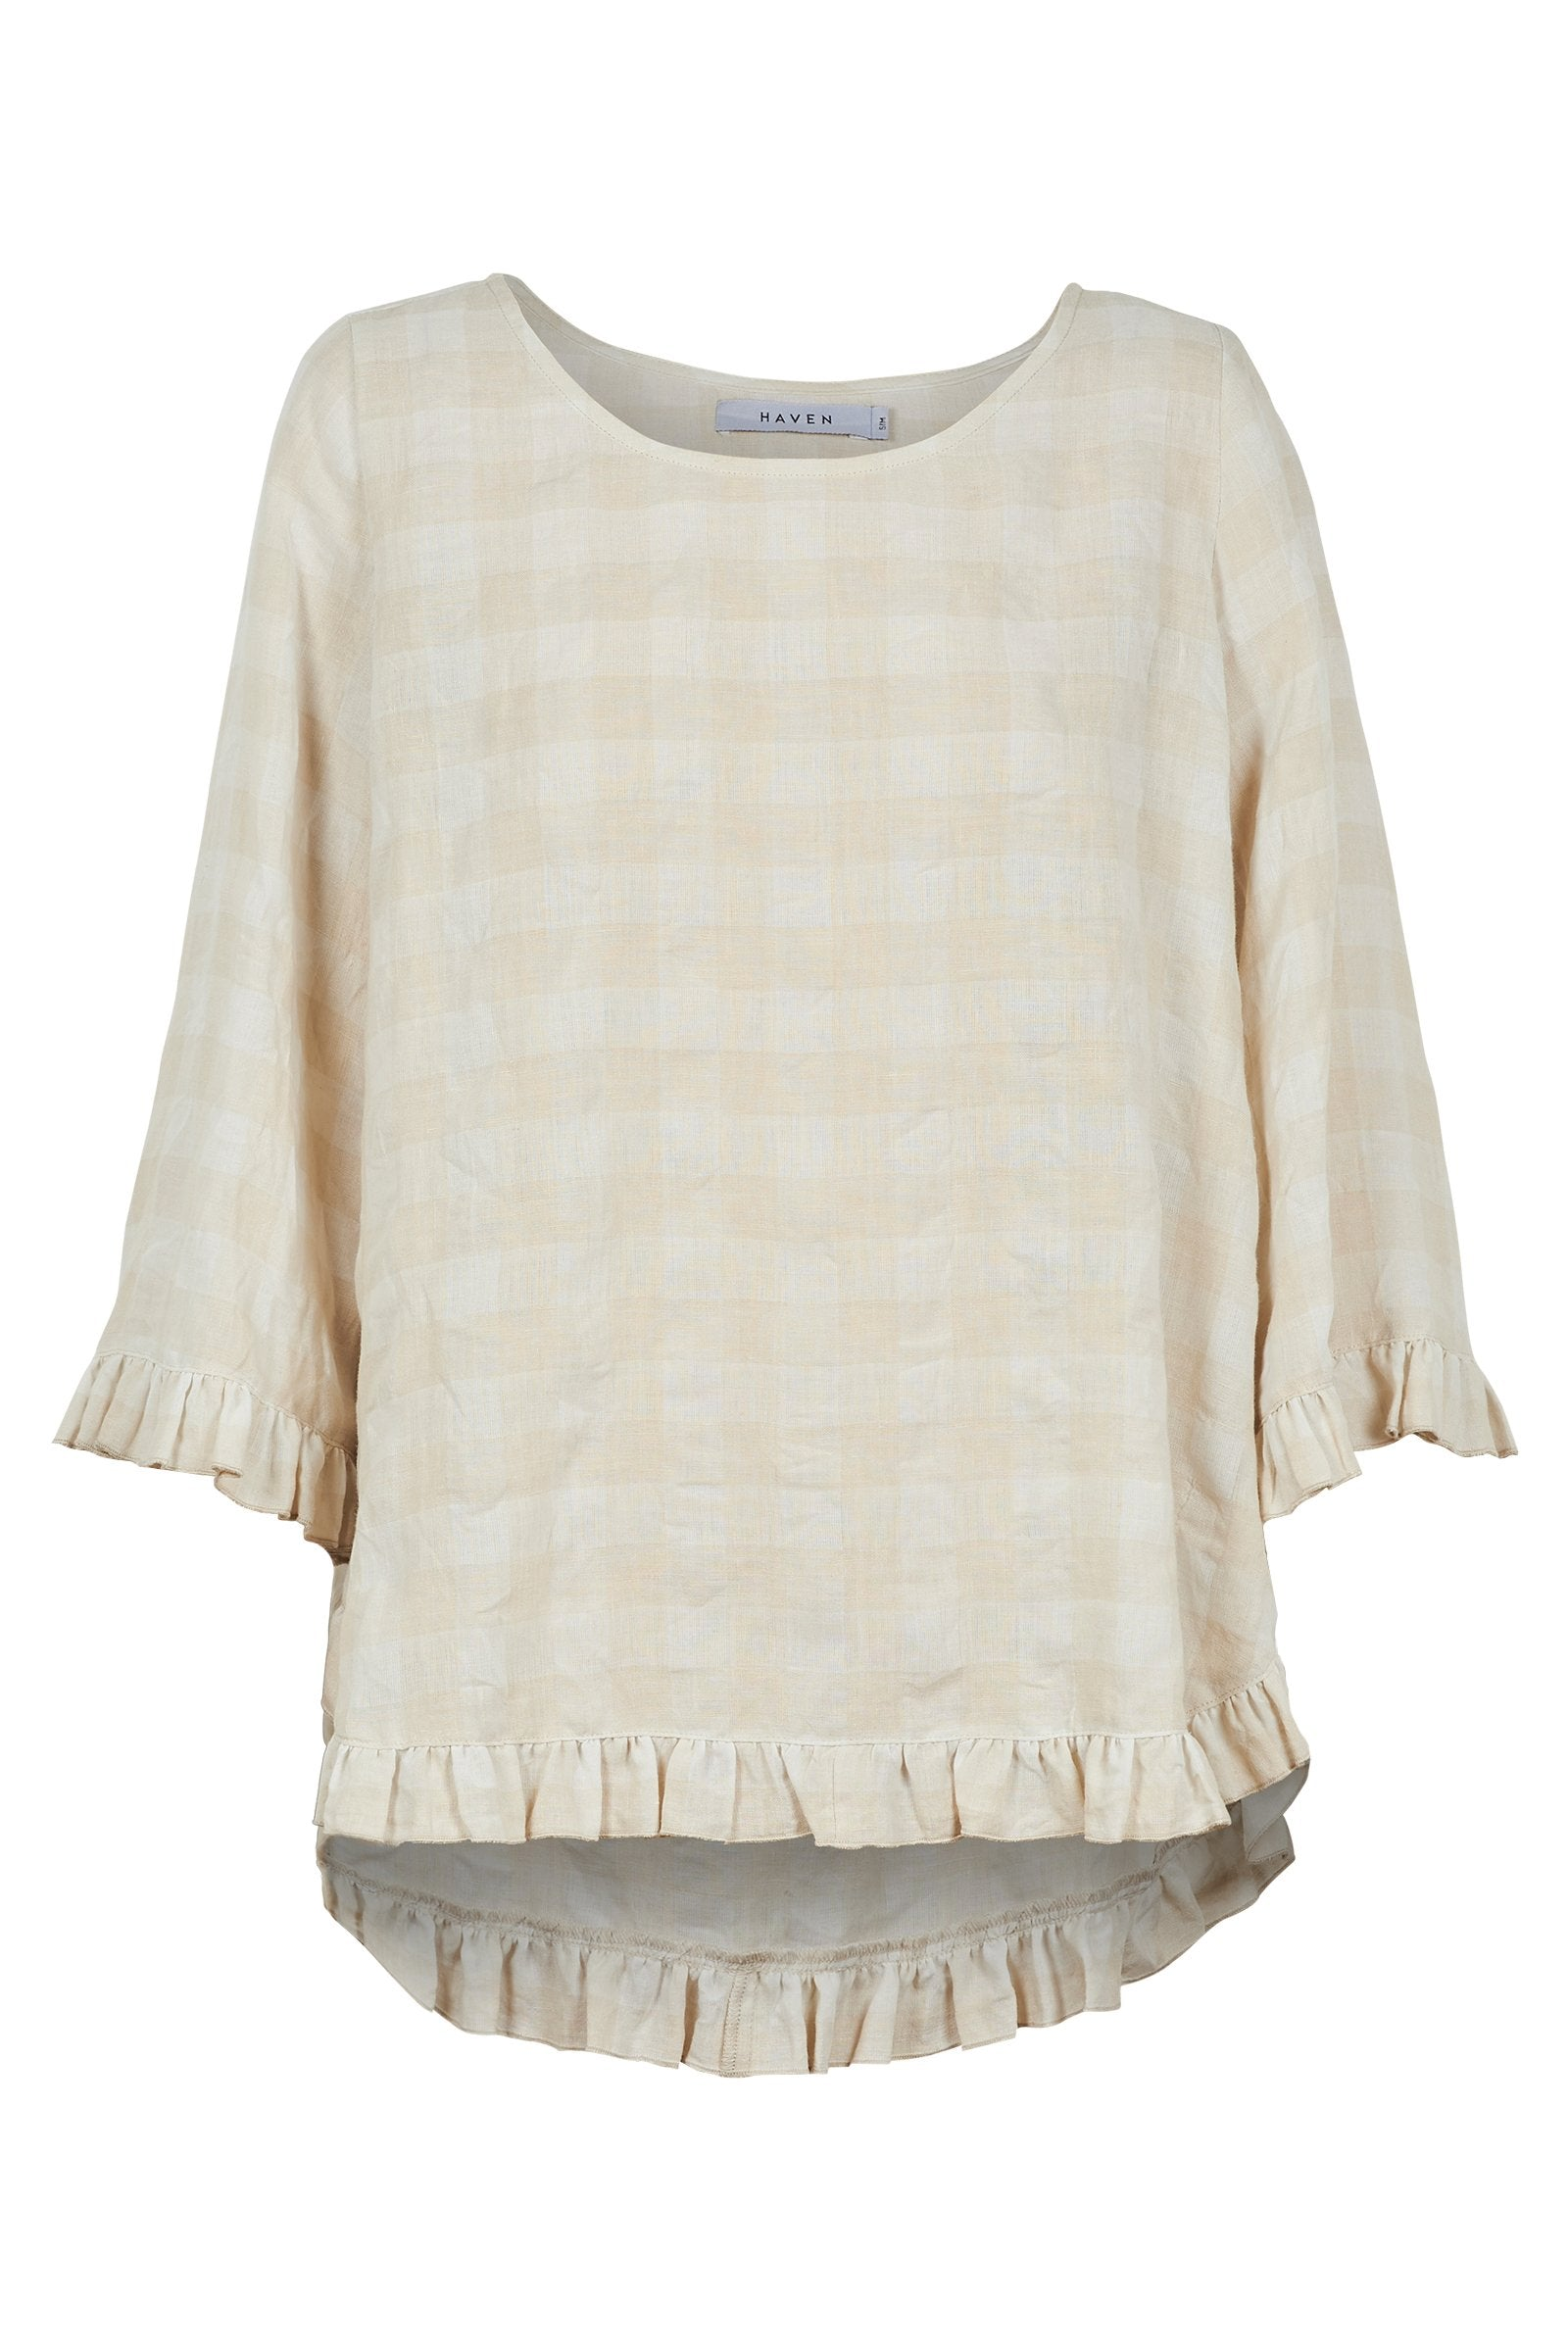 Haven Traveller Top - Bamboo